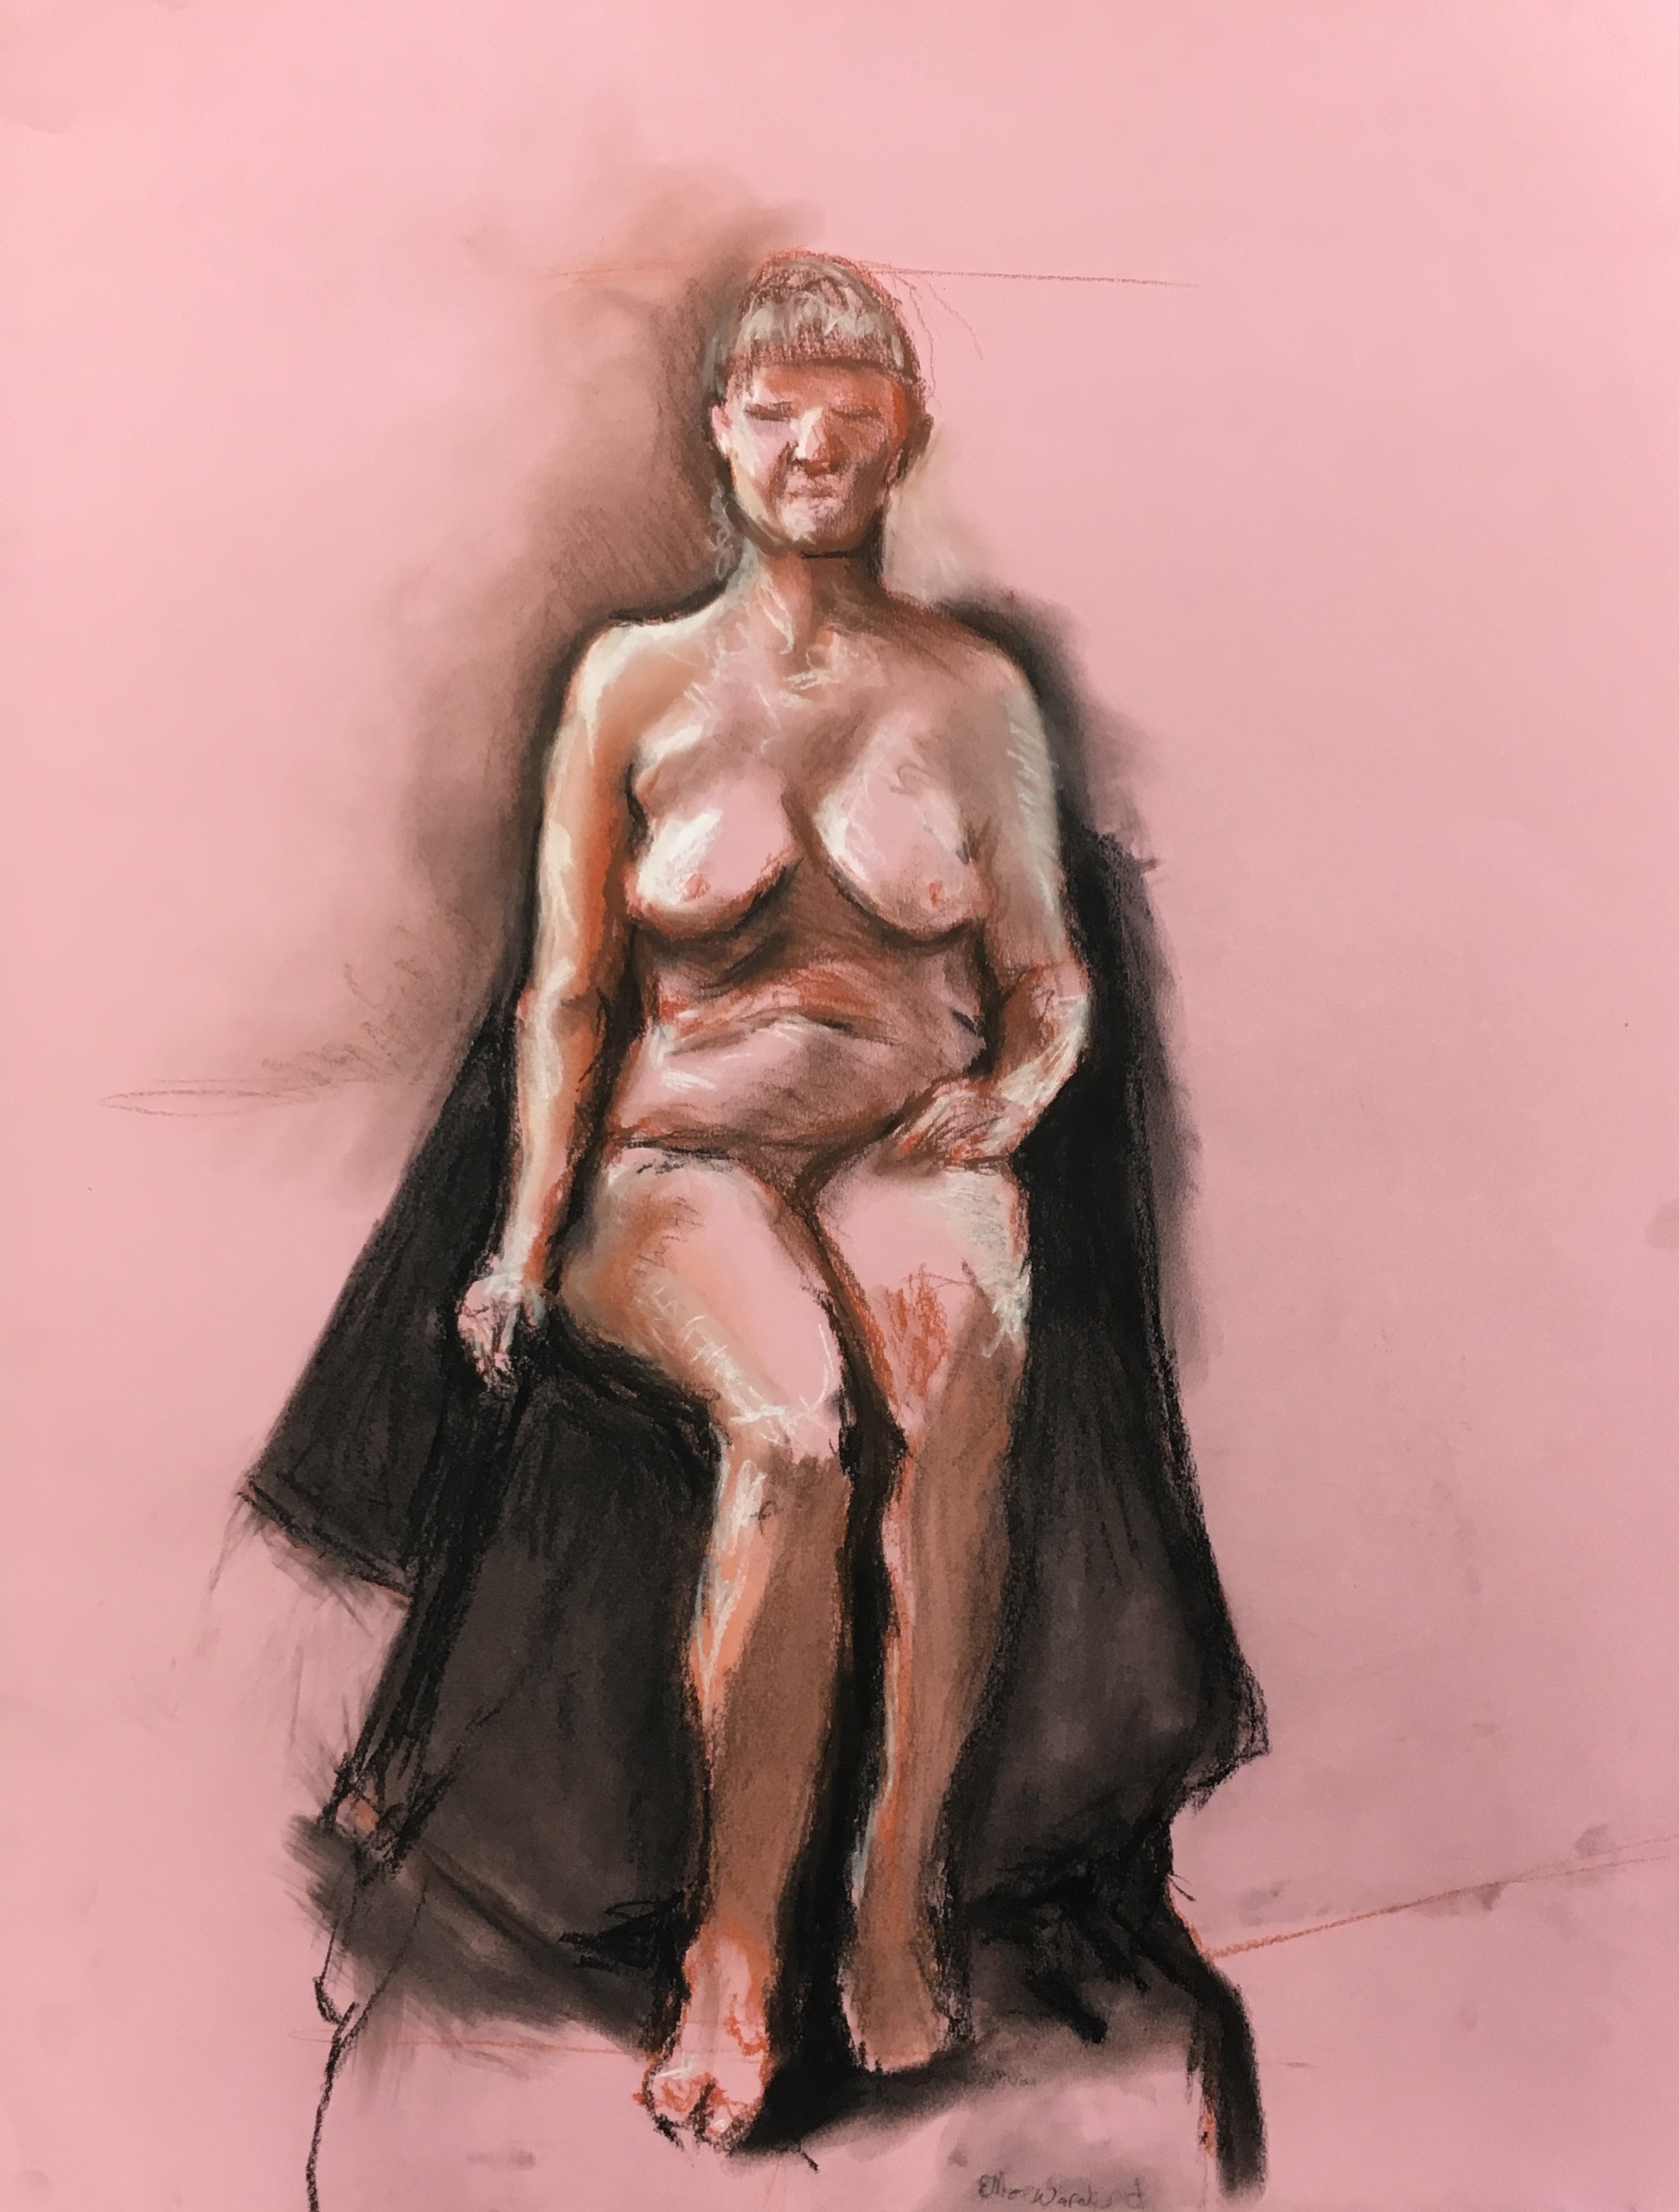 nude, 2017  conté crayon and charcoal on colored paper